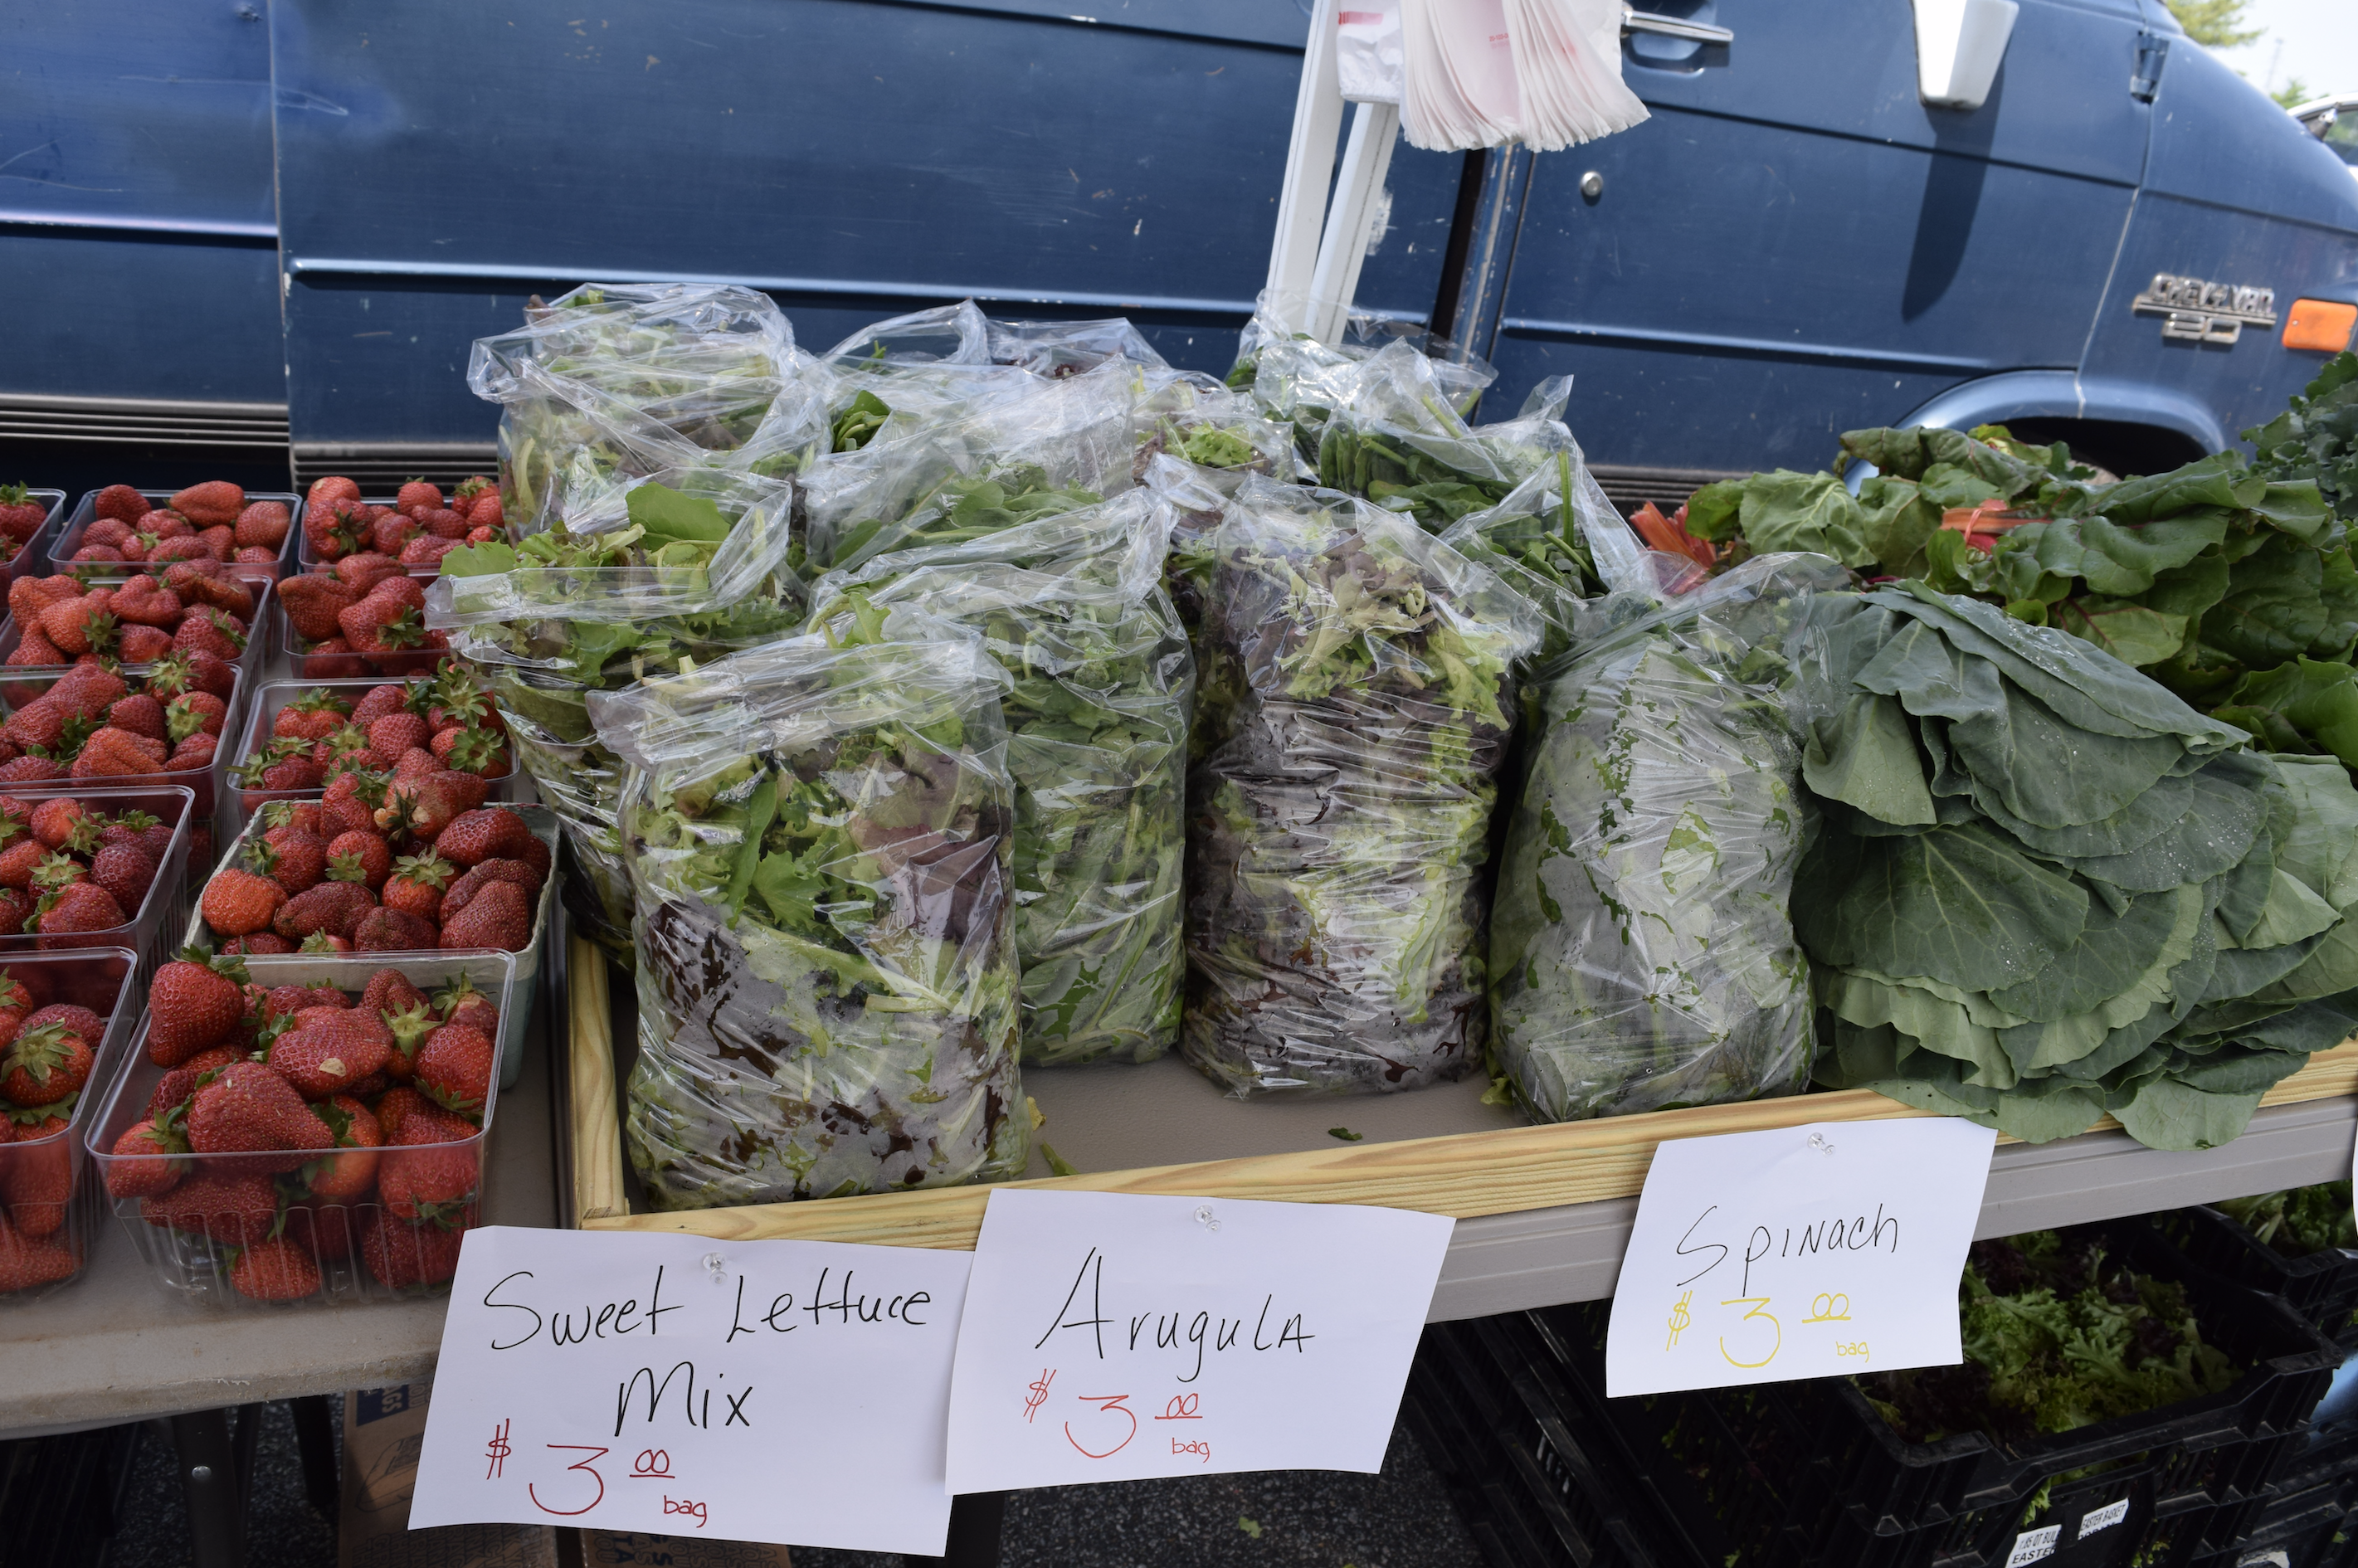 Fresh produce found at the farmers market in Woodbridge, Virginia - The Market at Potomac Mills